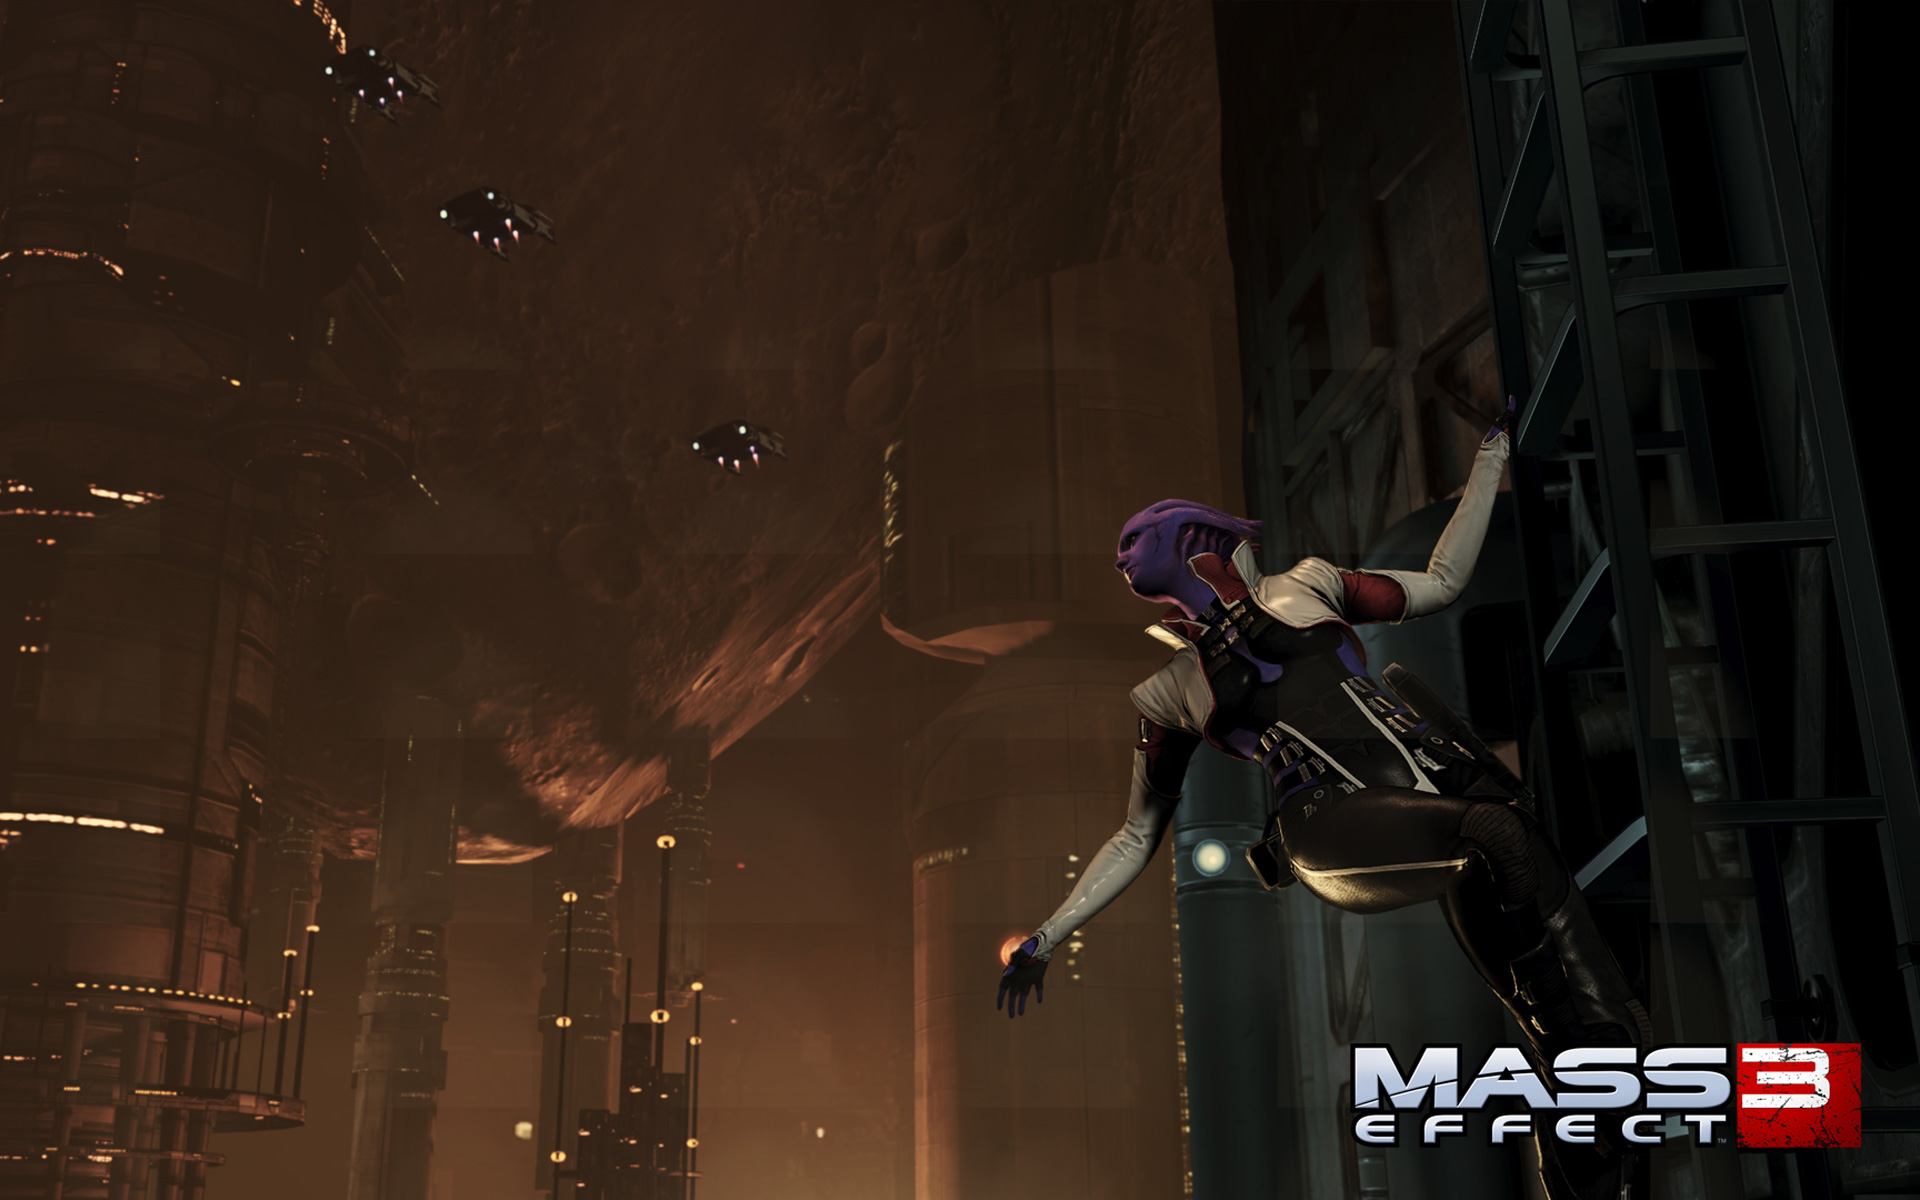 Mass Effect 3 Wallpaper in 1920x1200 1920x1200